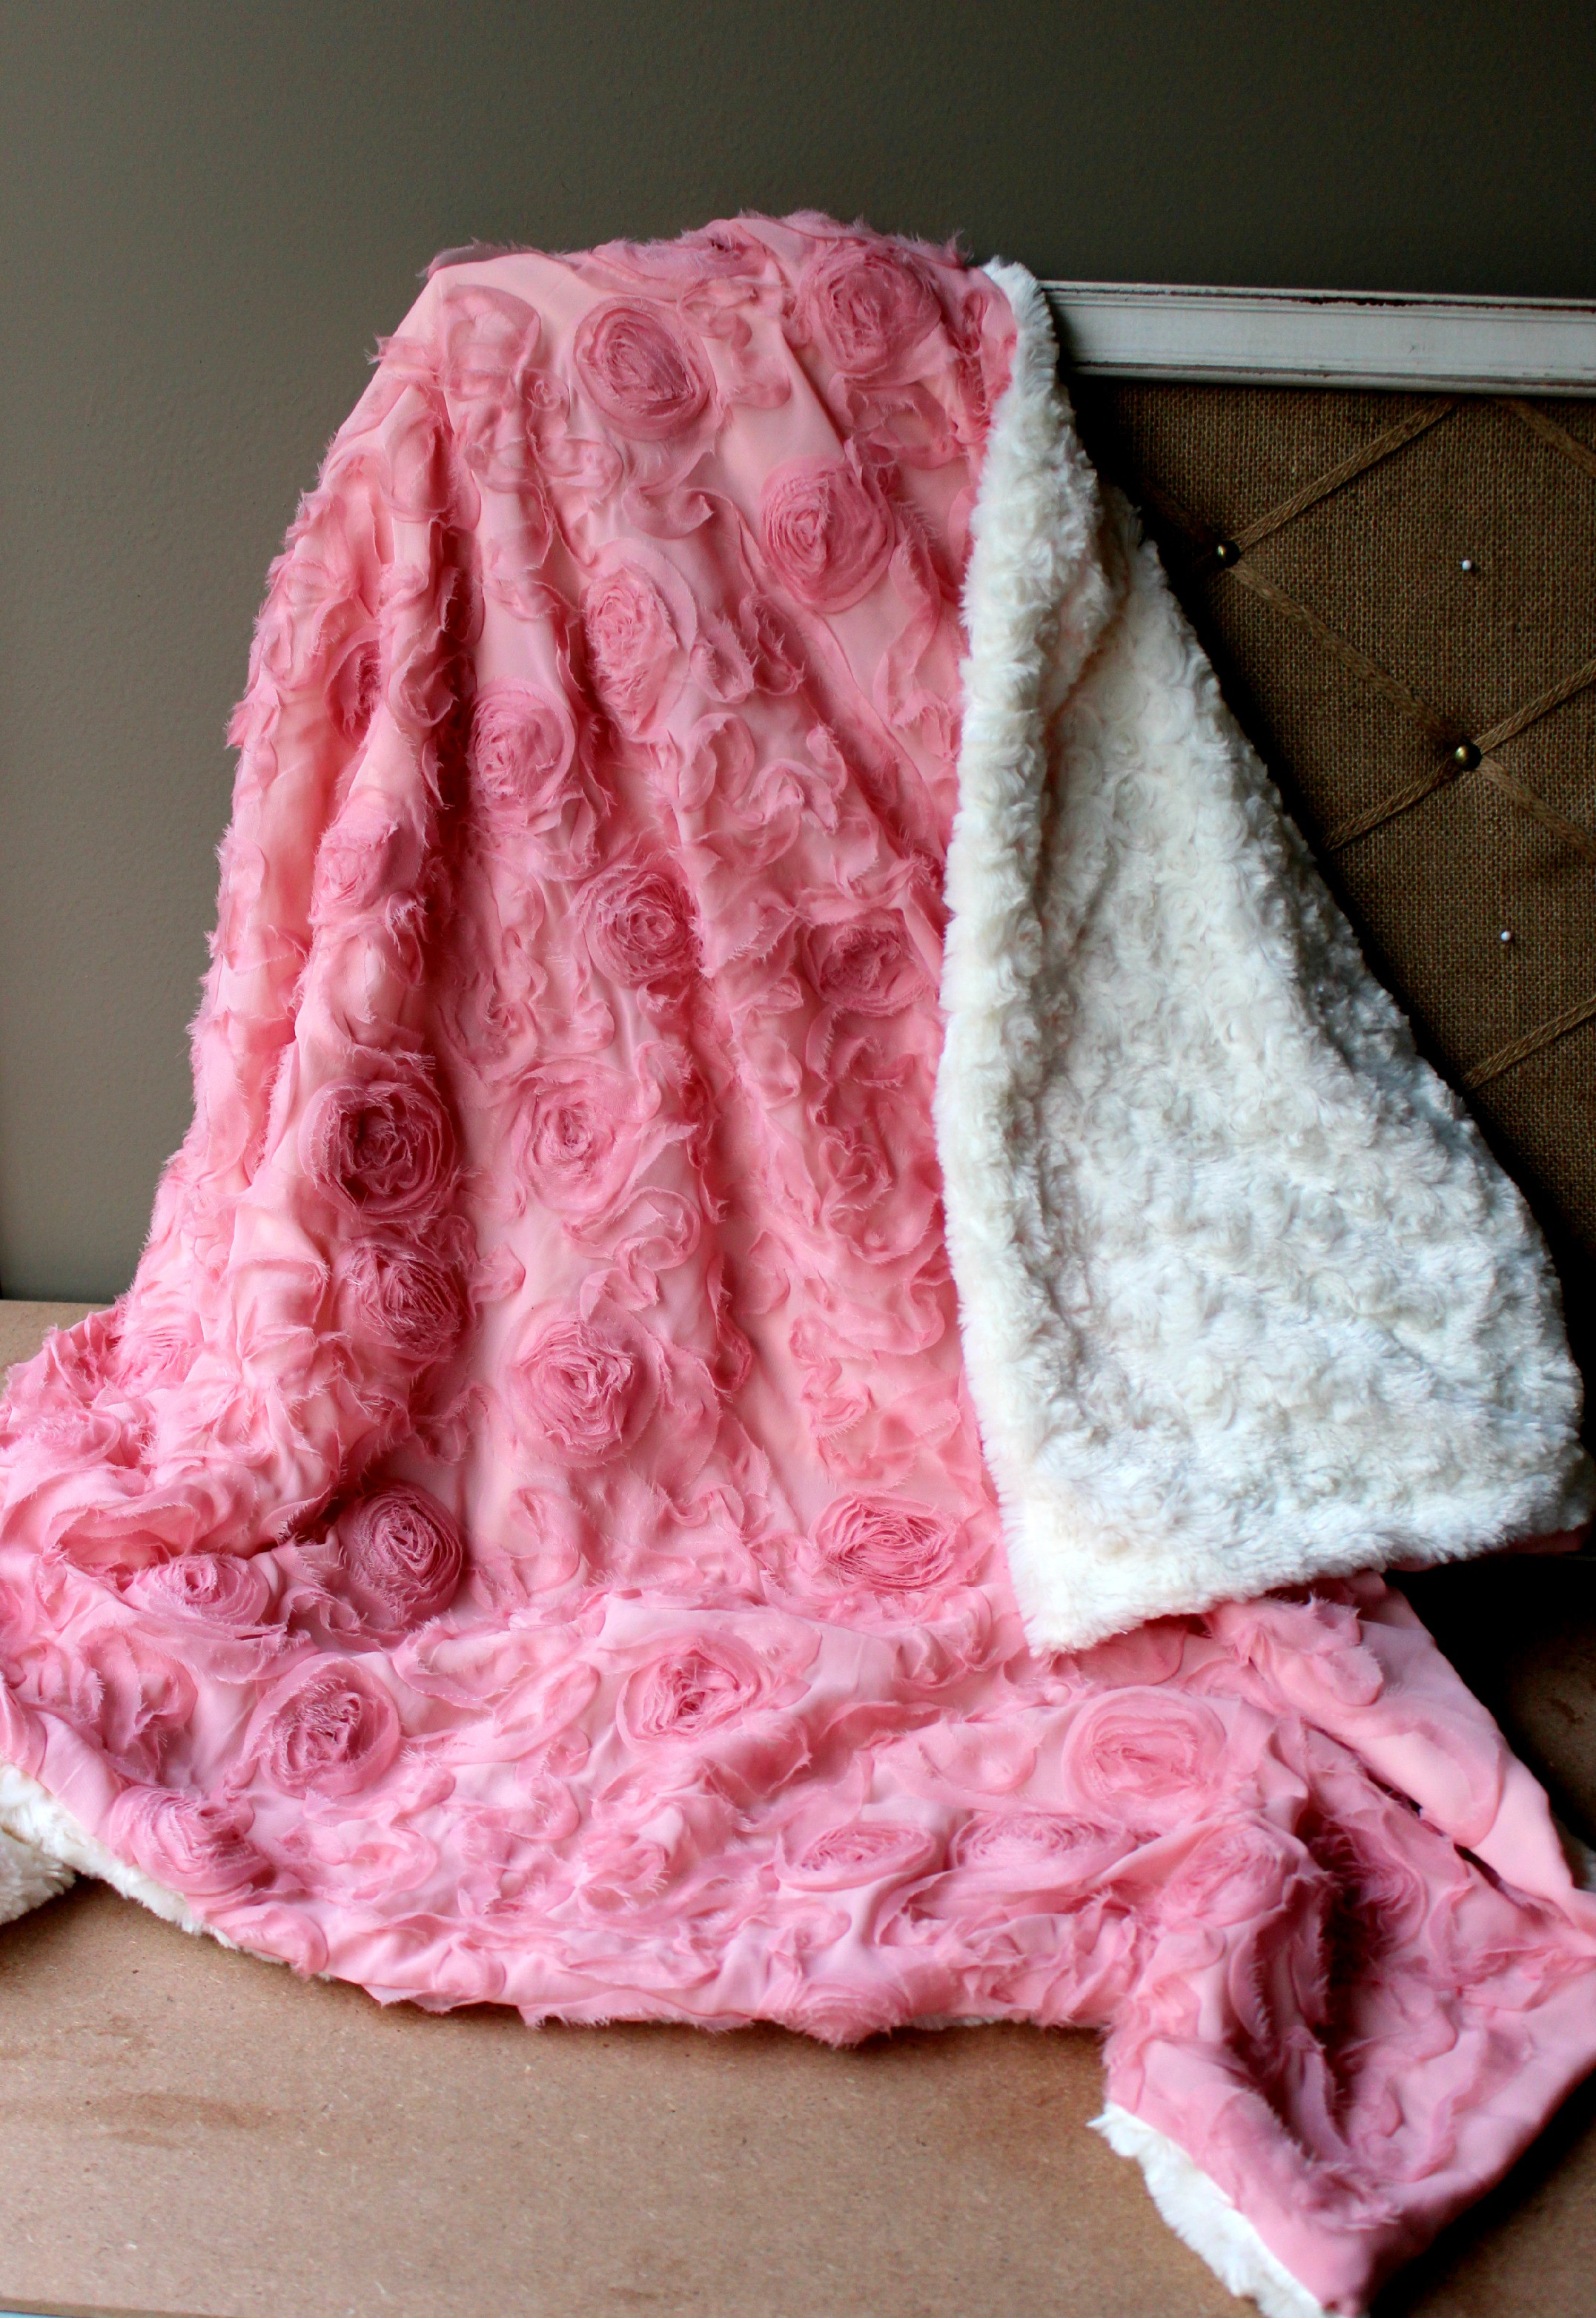 Best ideas about DIY Baby Blanket . Save or Pin Rosette Baby Blanket DIY – My Mom Taught Me To Play With Now.